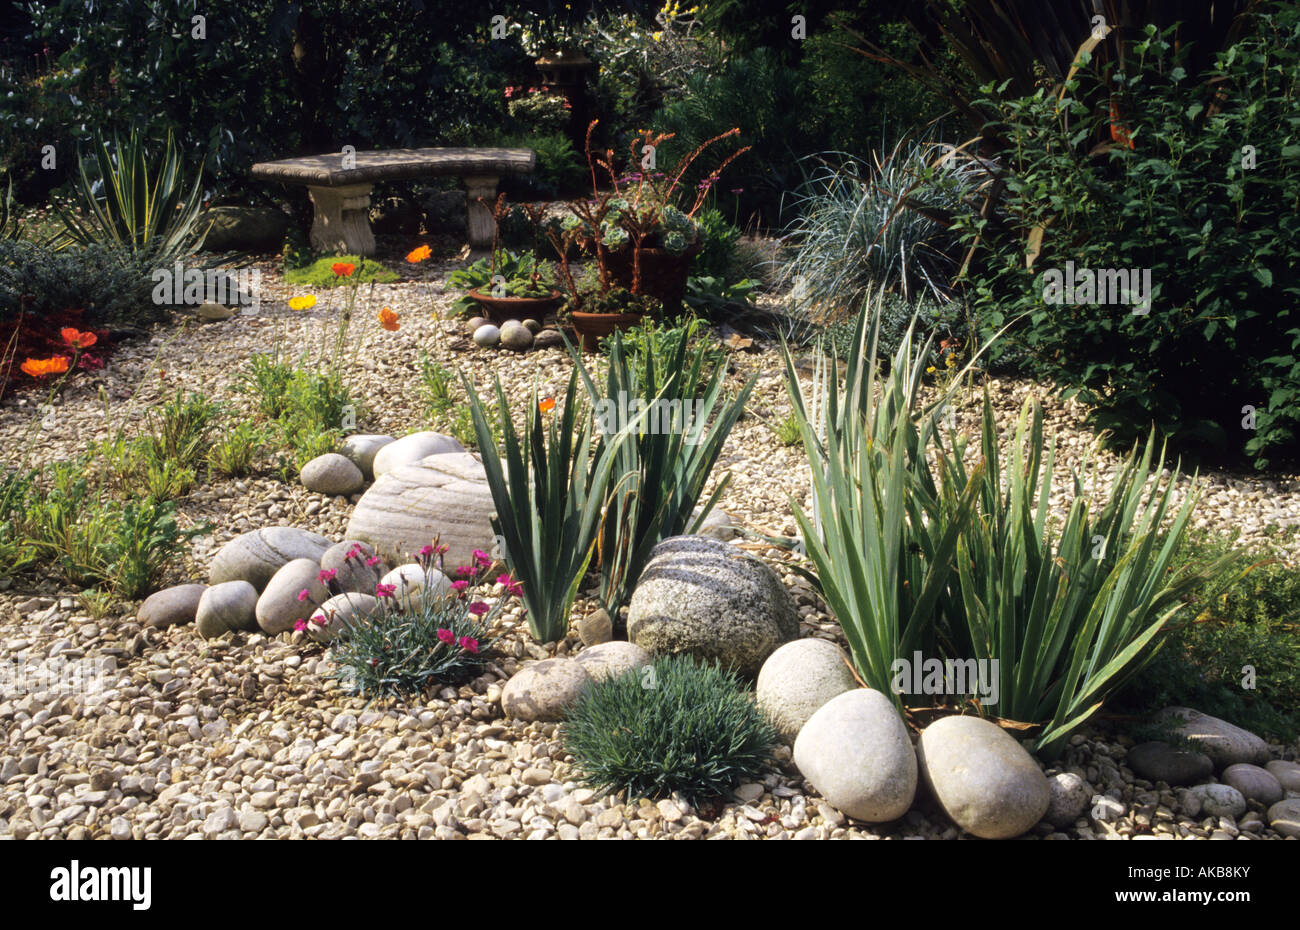 Heathfield Surrey Gravel Garden With Stones Pebbles Phormium Stone Seat